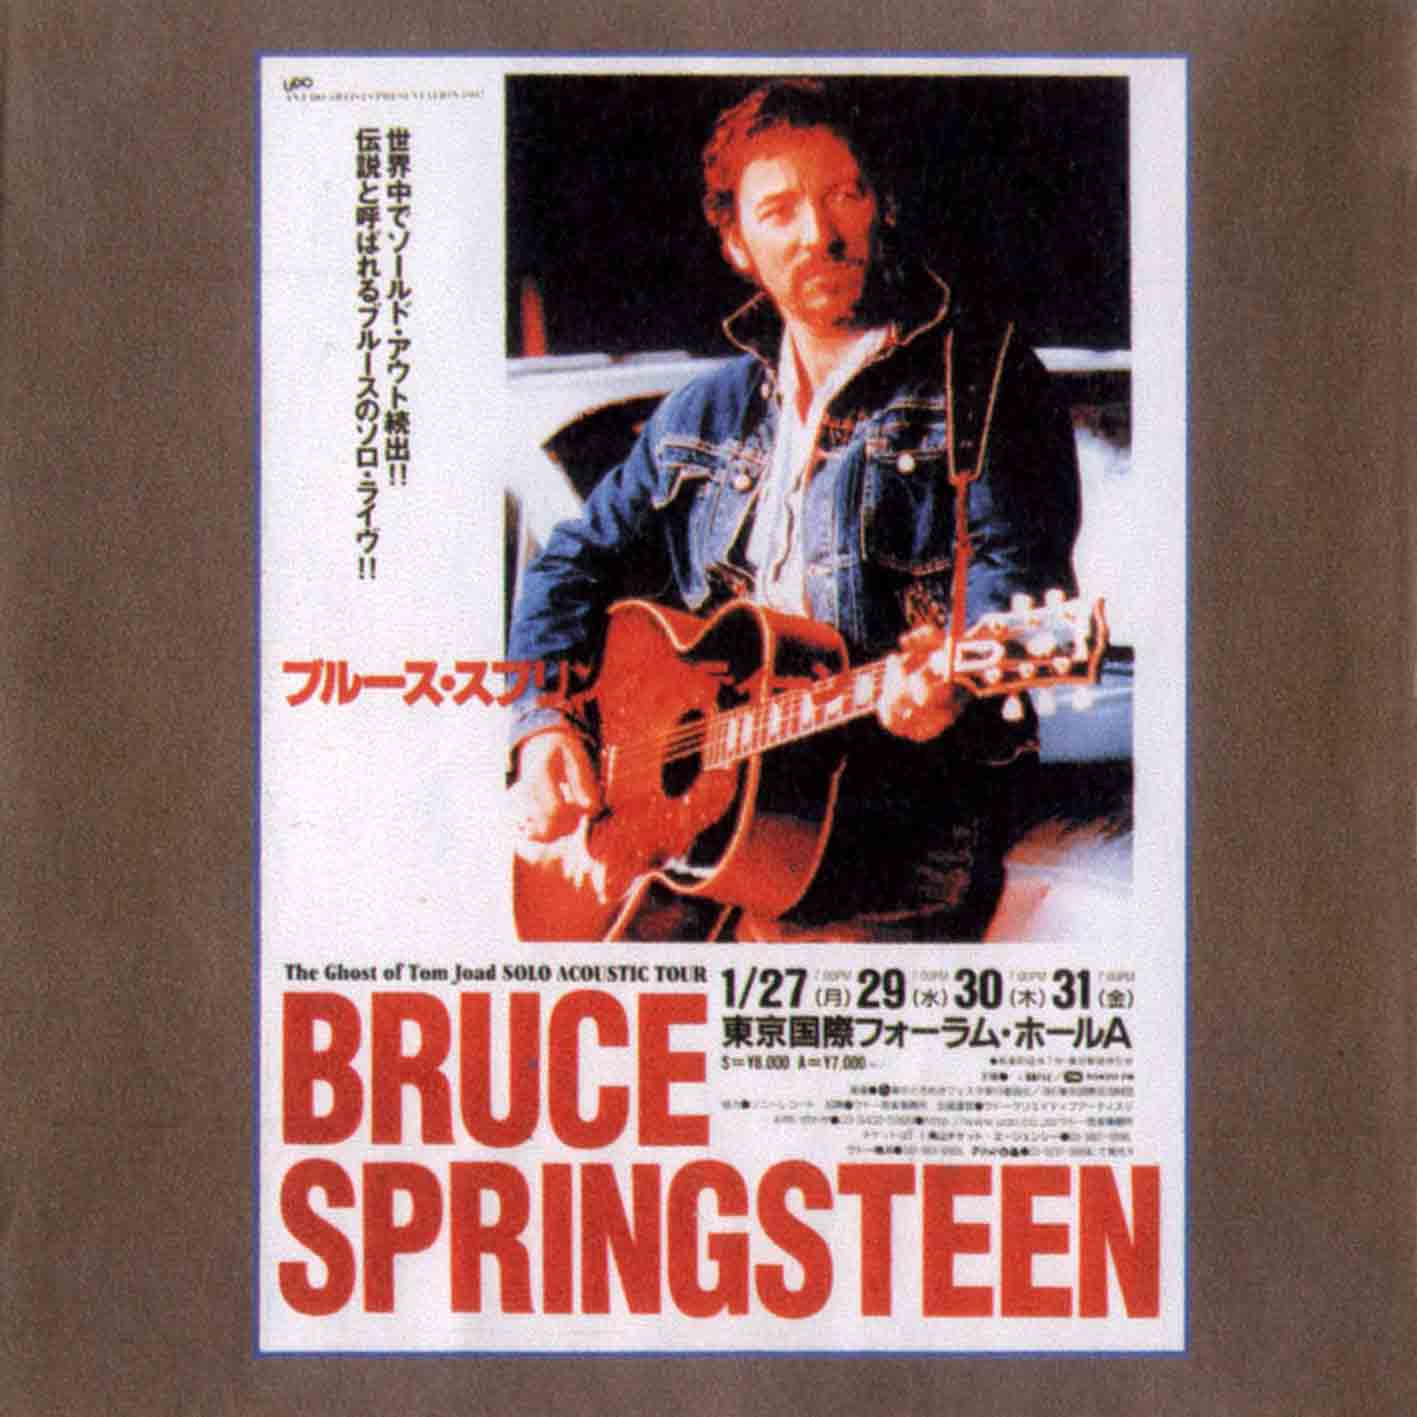 the ghost of tom joad Archives - Springsteen Bootleg